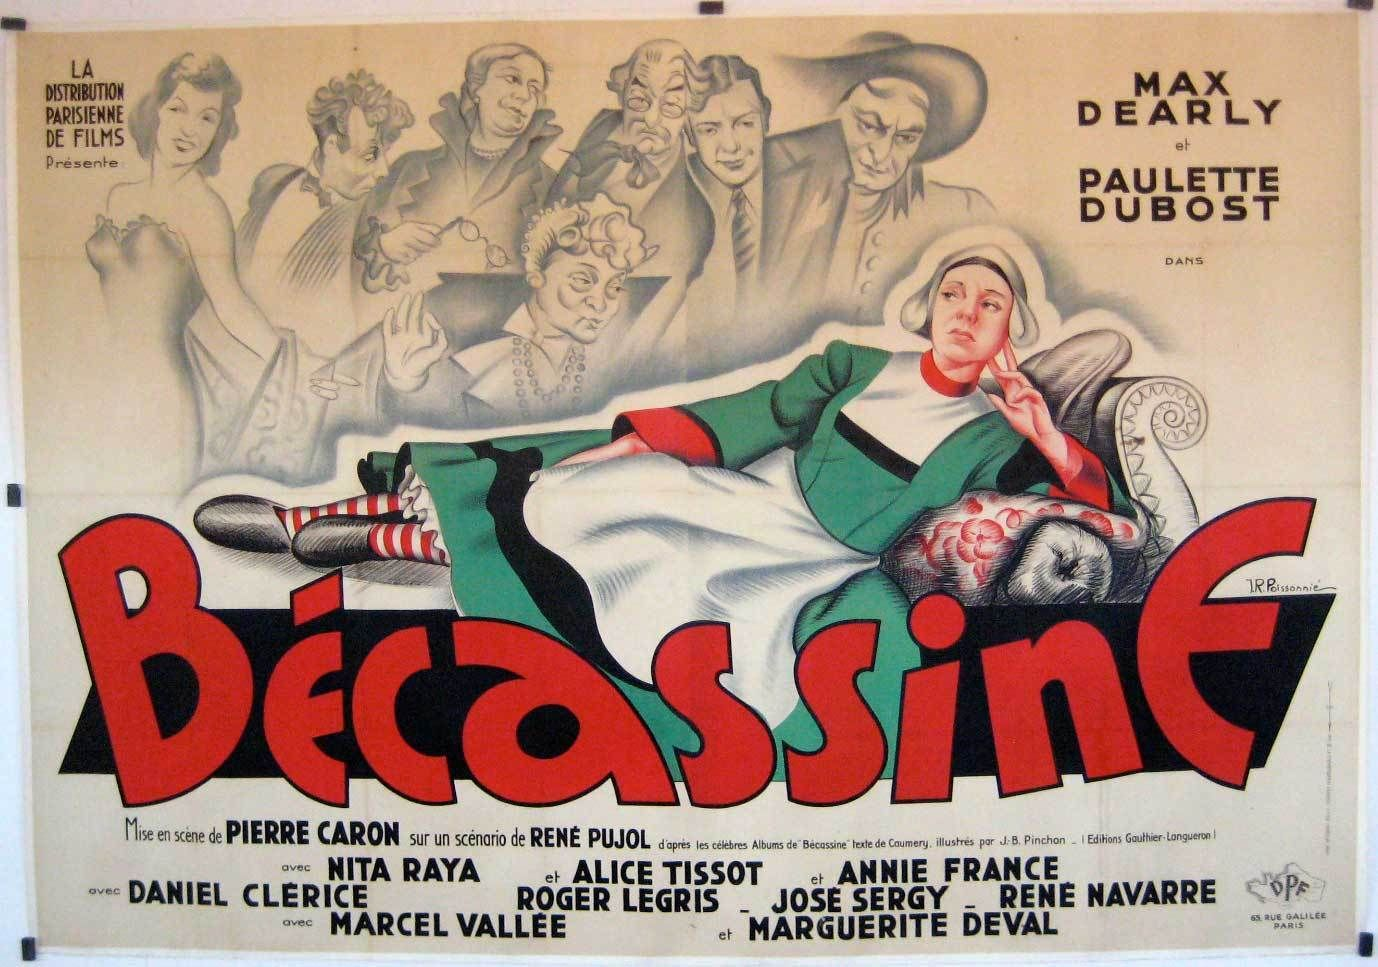 Download Bécassine! Full-Movie Free